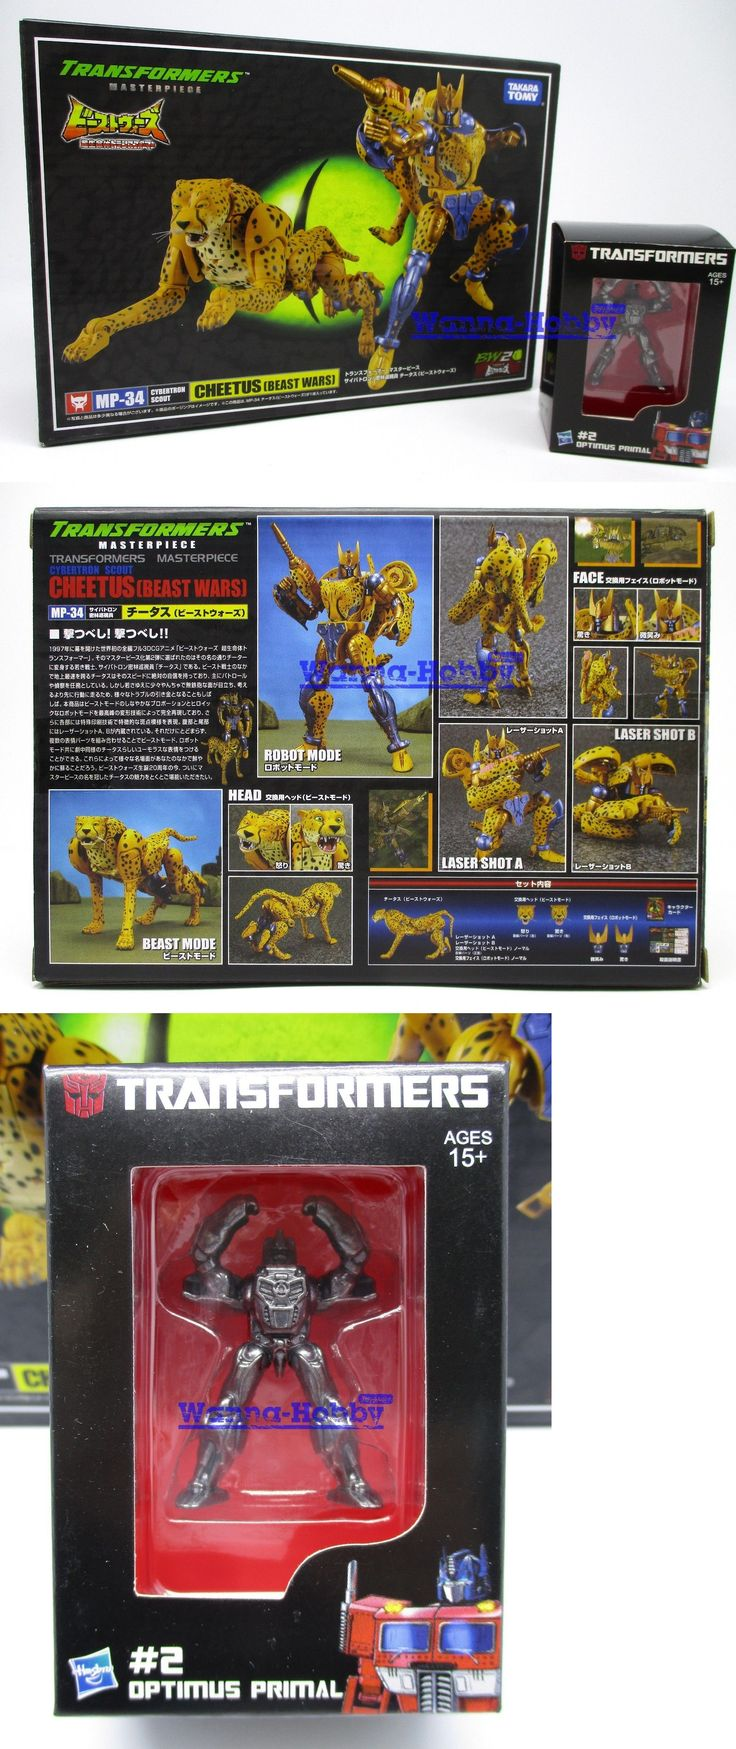 Transformers and Robots 83732: 68910 Transformers Masterpiece Mp-34 Beast Wars Cheetor With Metal Mini Optimus -> BUY IT NOW ONLY: $59.99 on eBay!